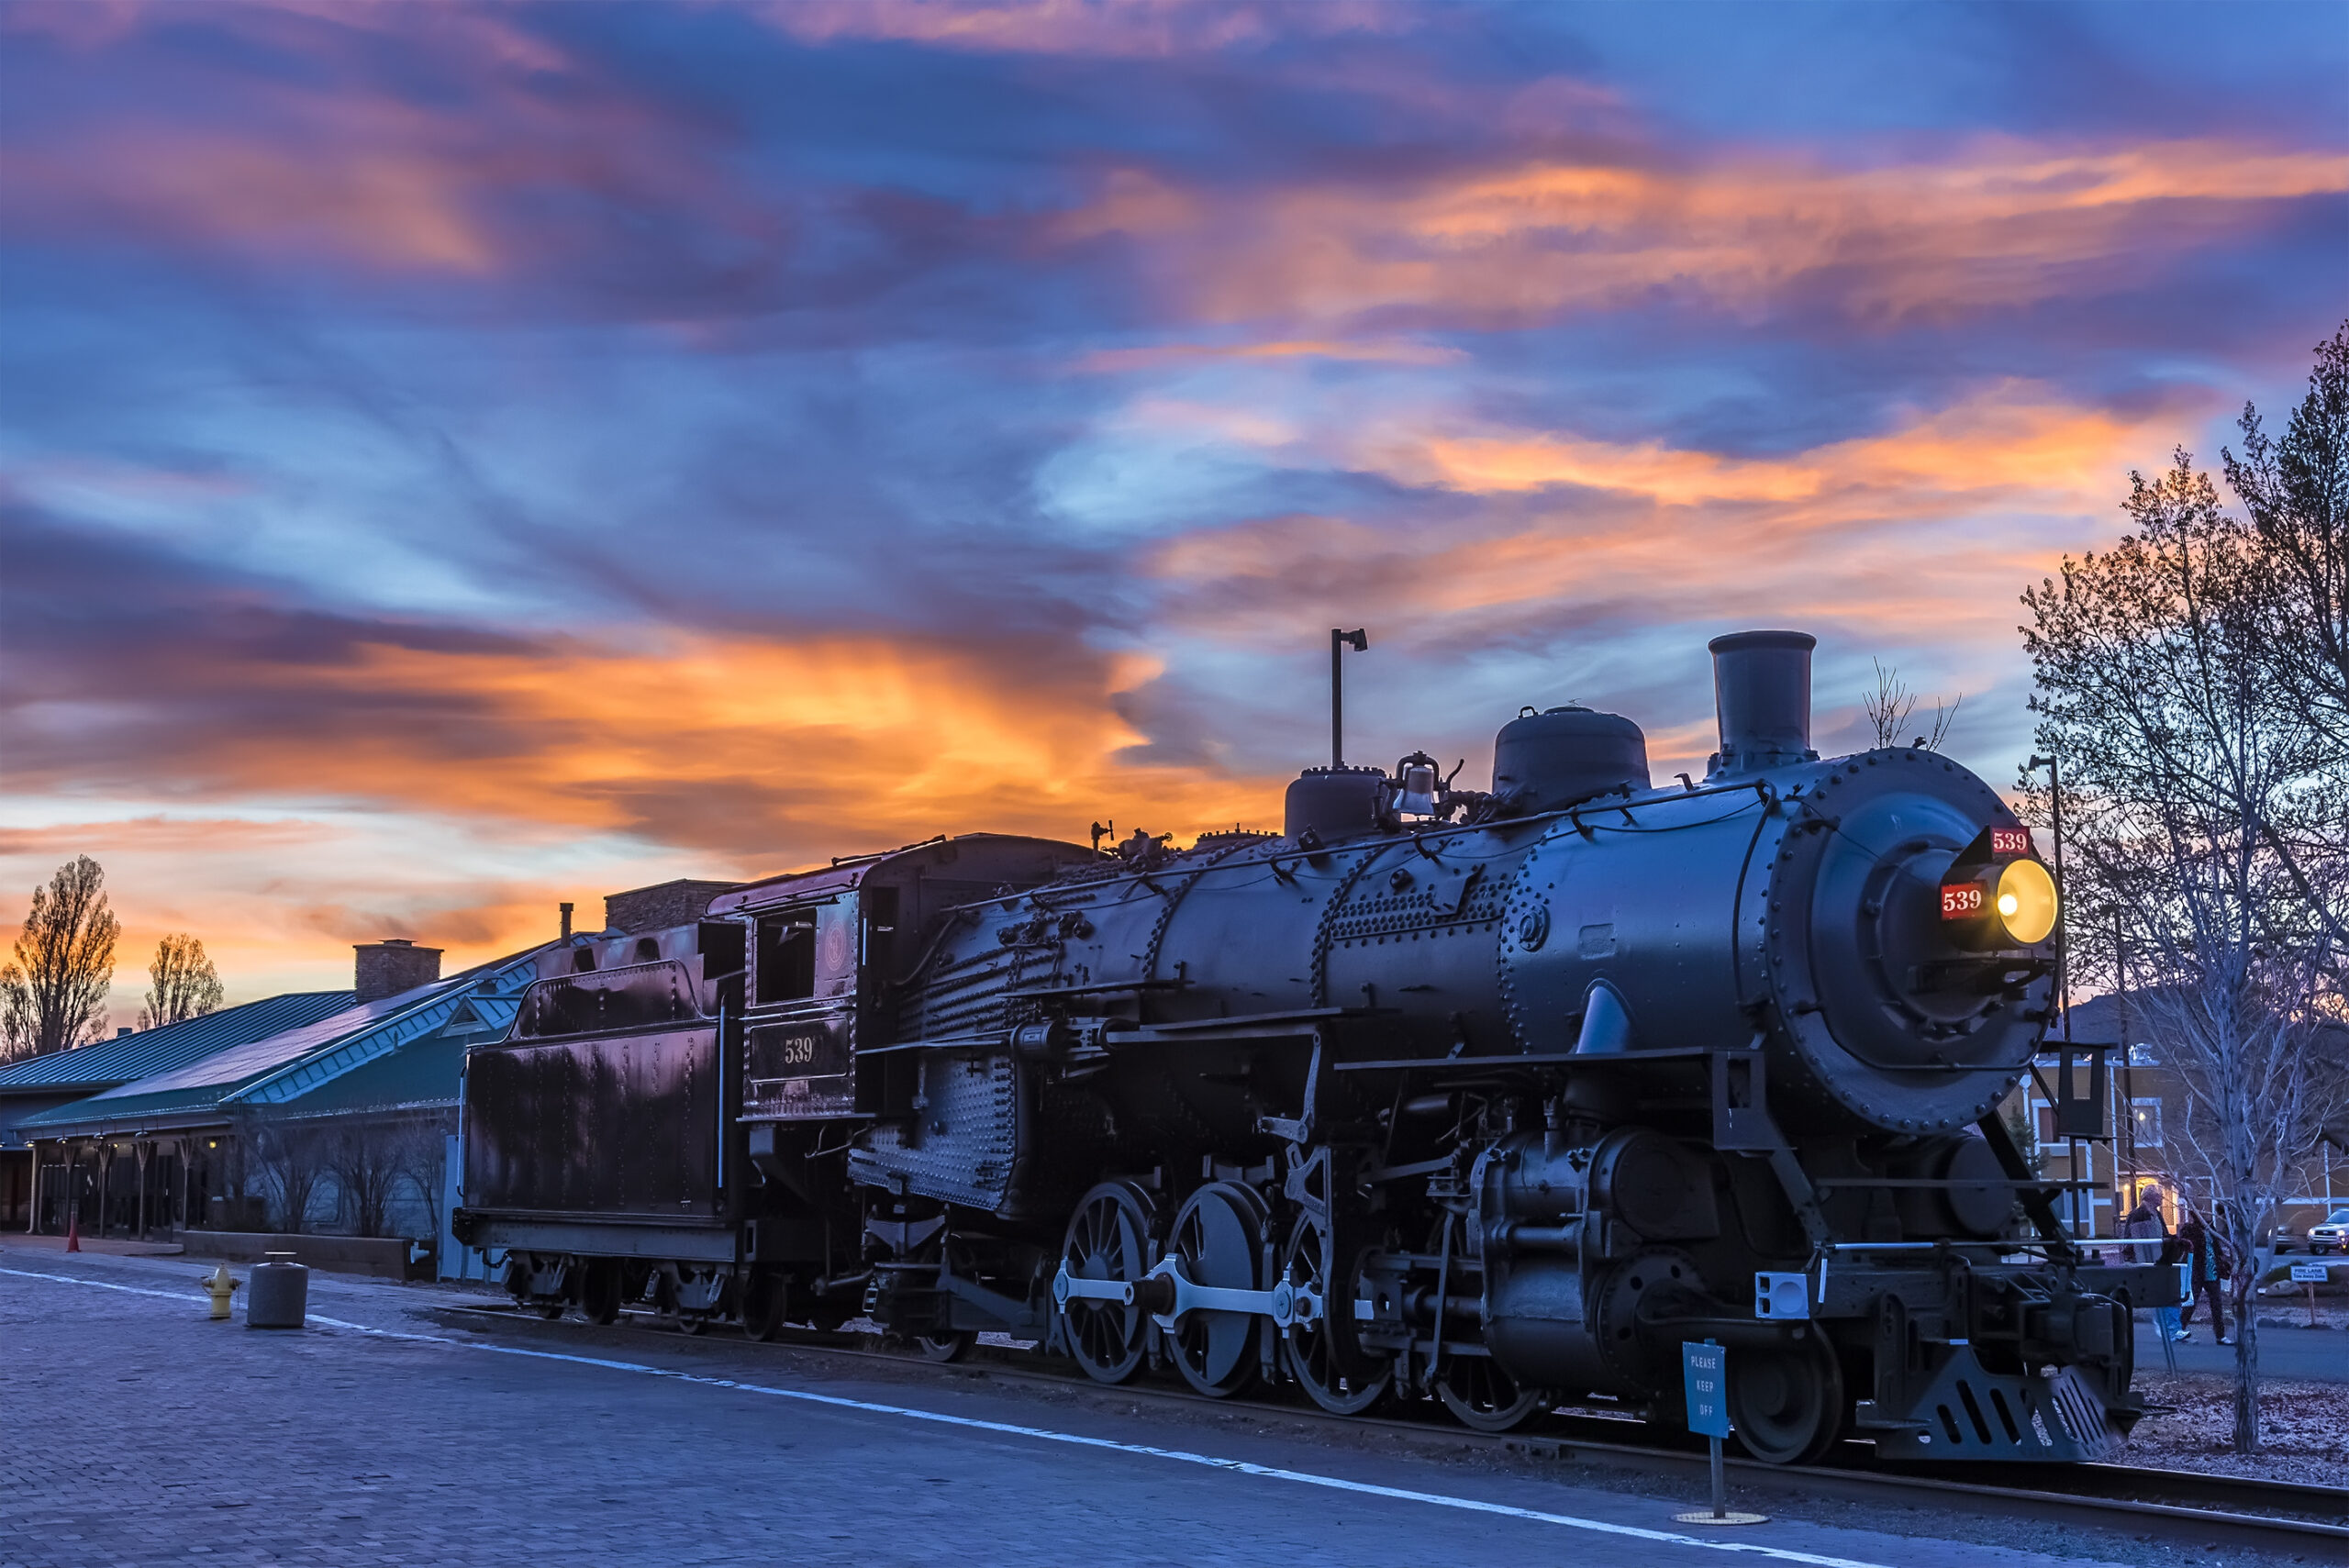 The train to the Grand Canyon waiting at Williams Station, Arizona illuminated by a fiery sunset sky.